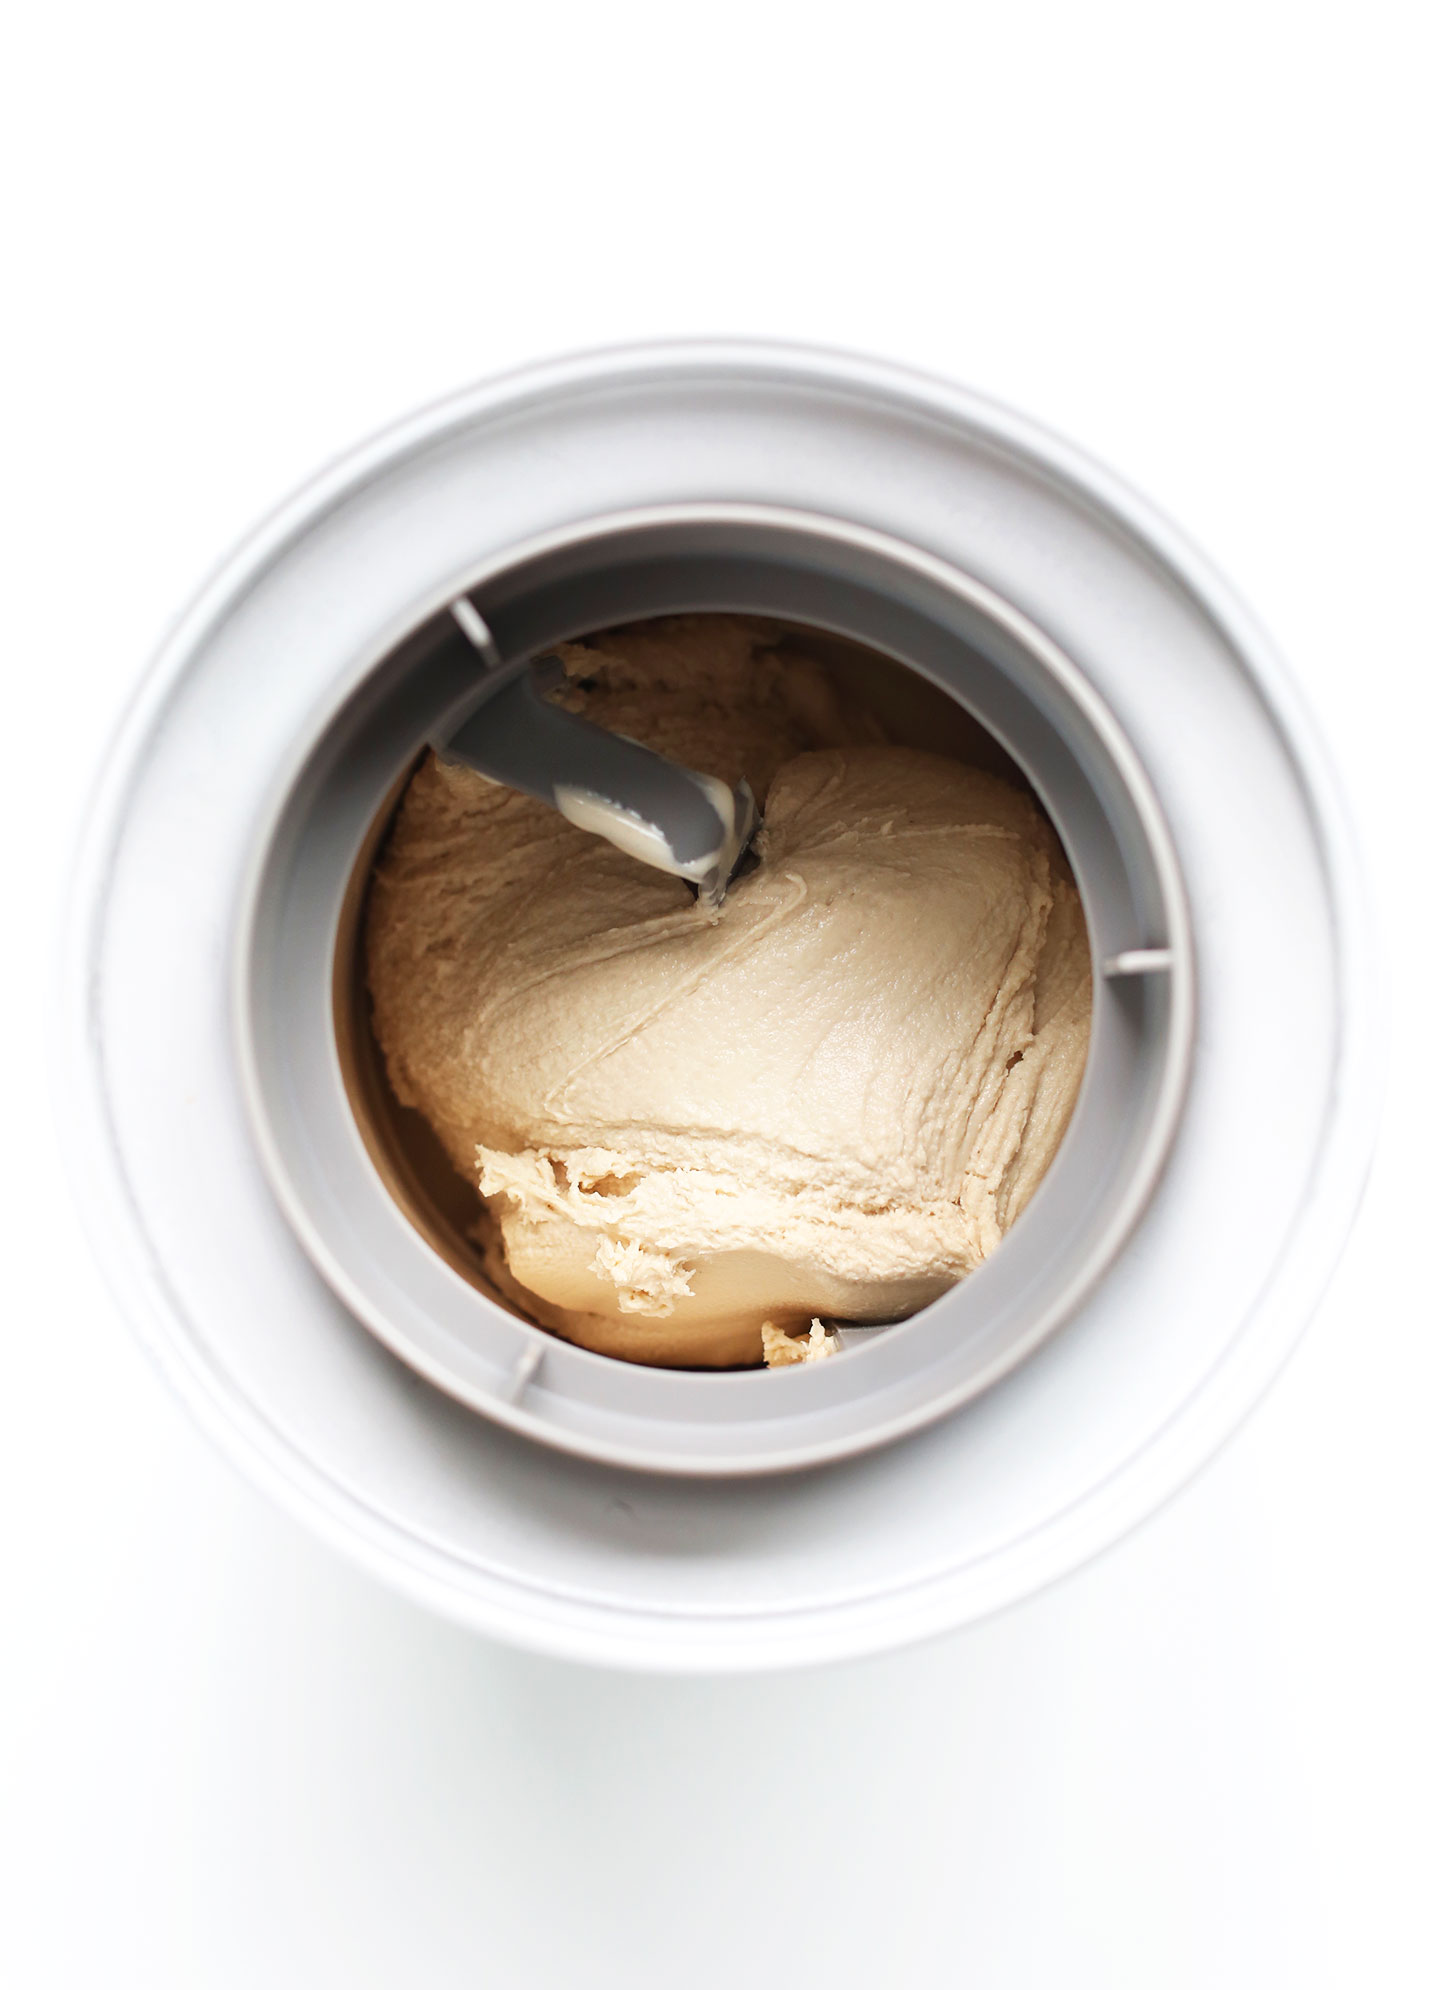 Churning homemade ice cream in an ice cream maker